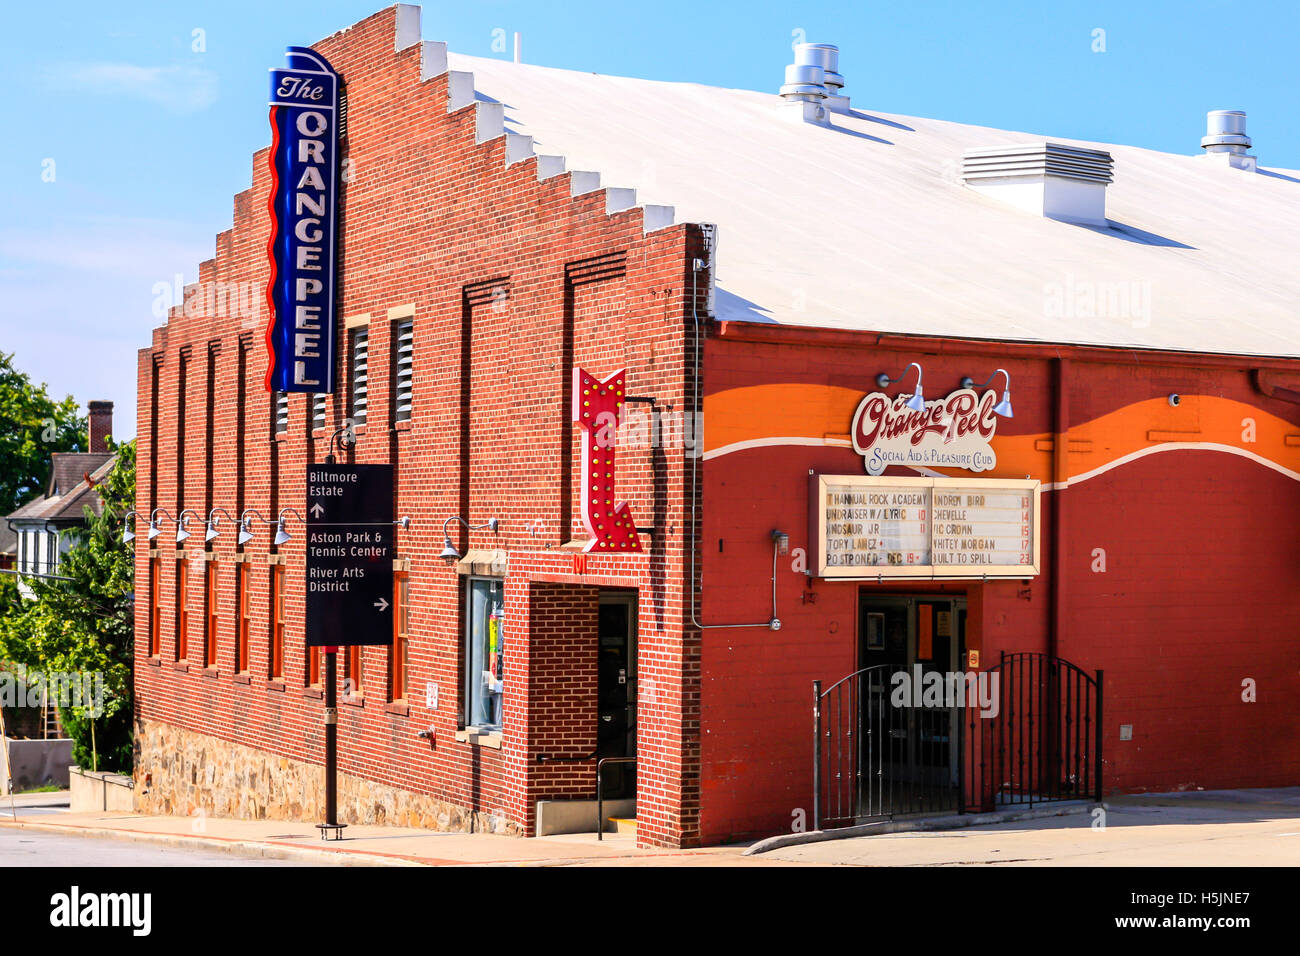 The Orange Peel music venue in downtown Asheville NC - Stock Image